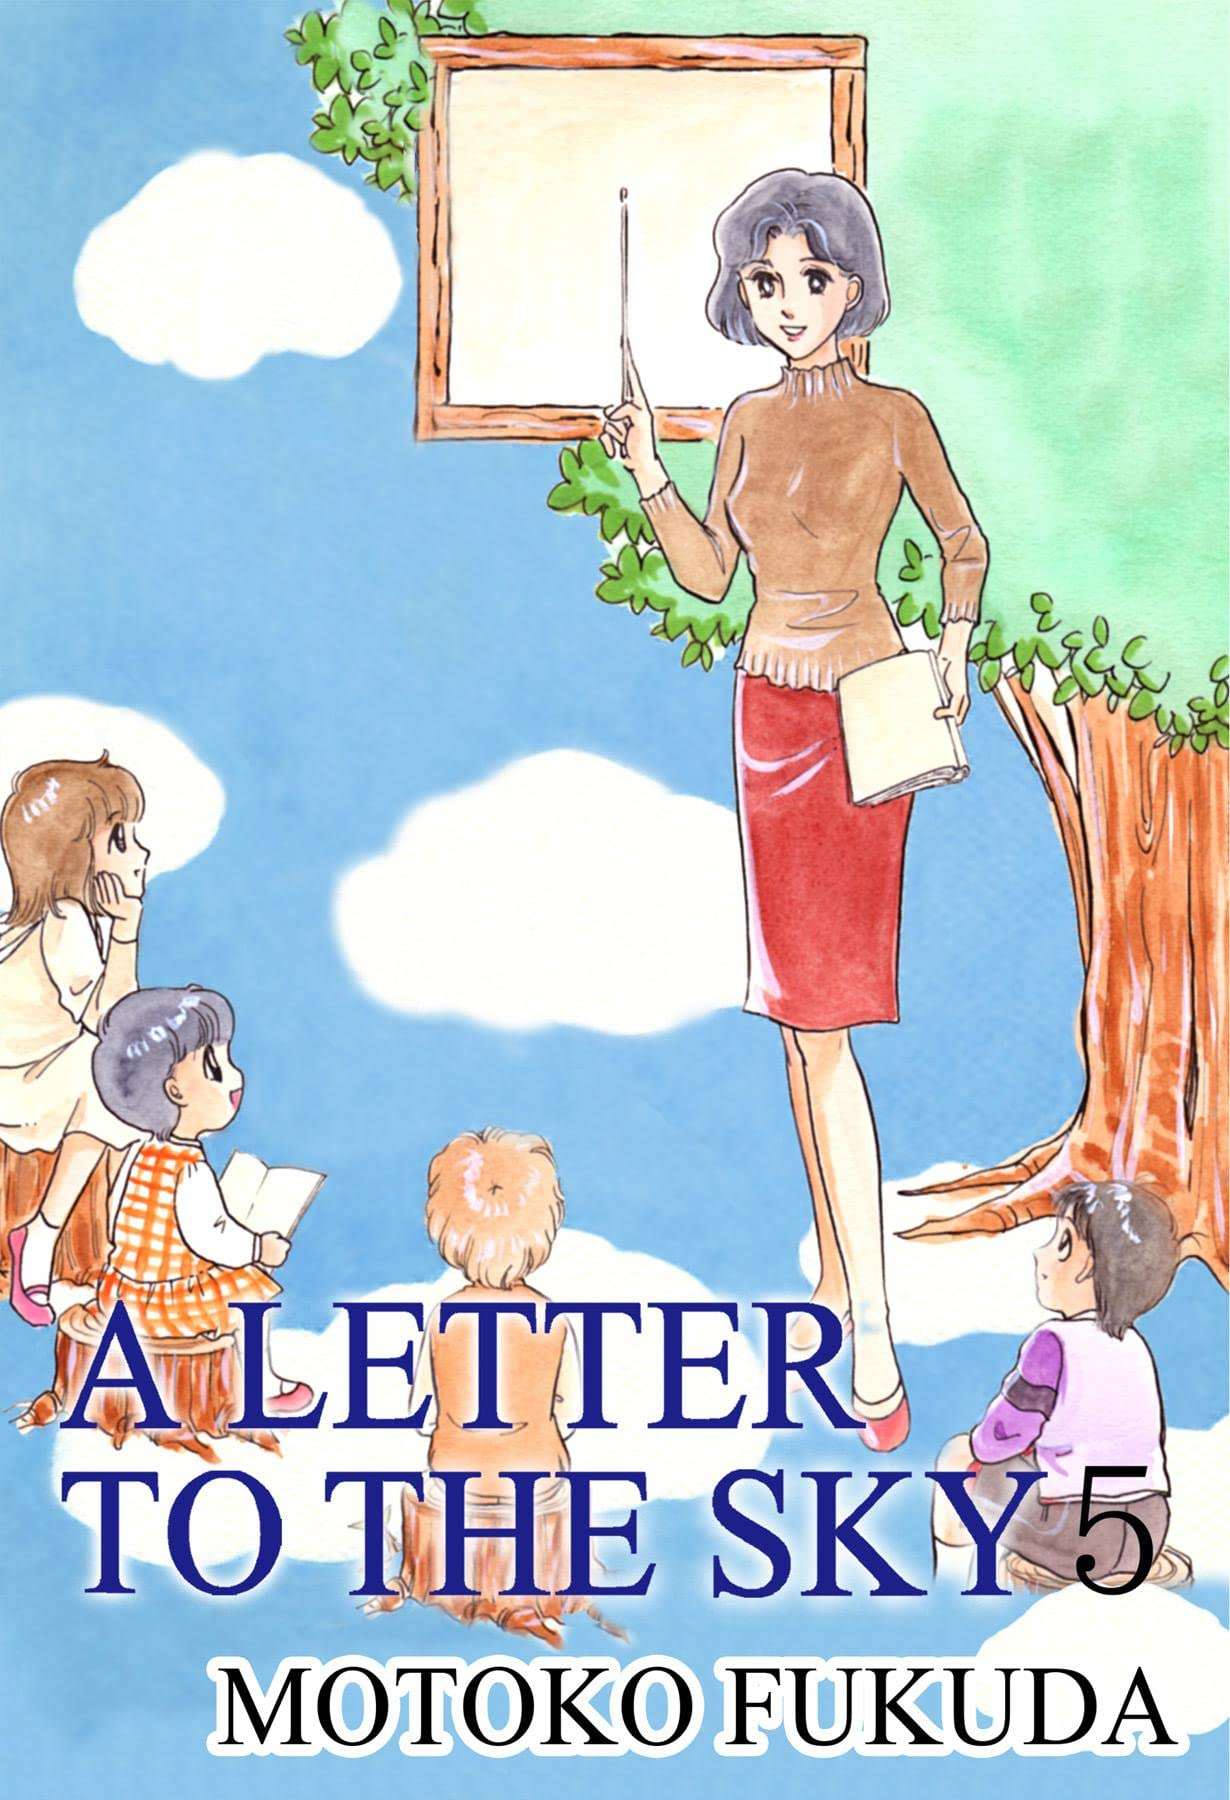 A LETTER TO THE SKY Vol. 5